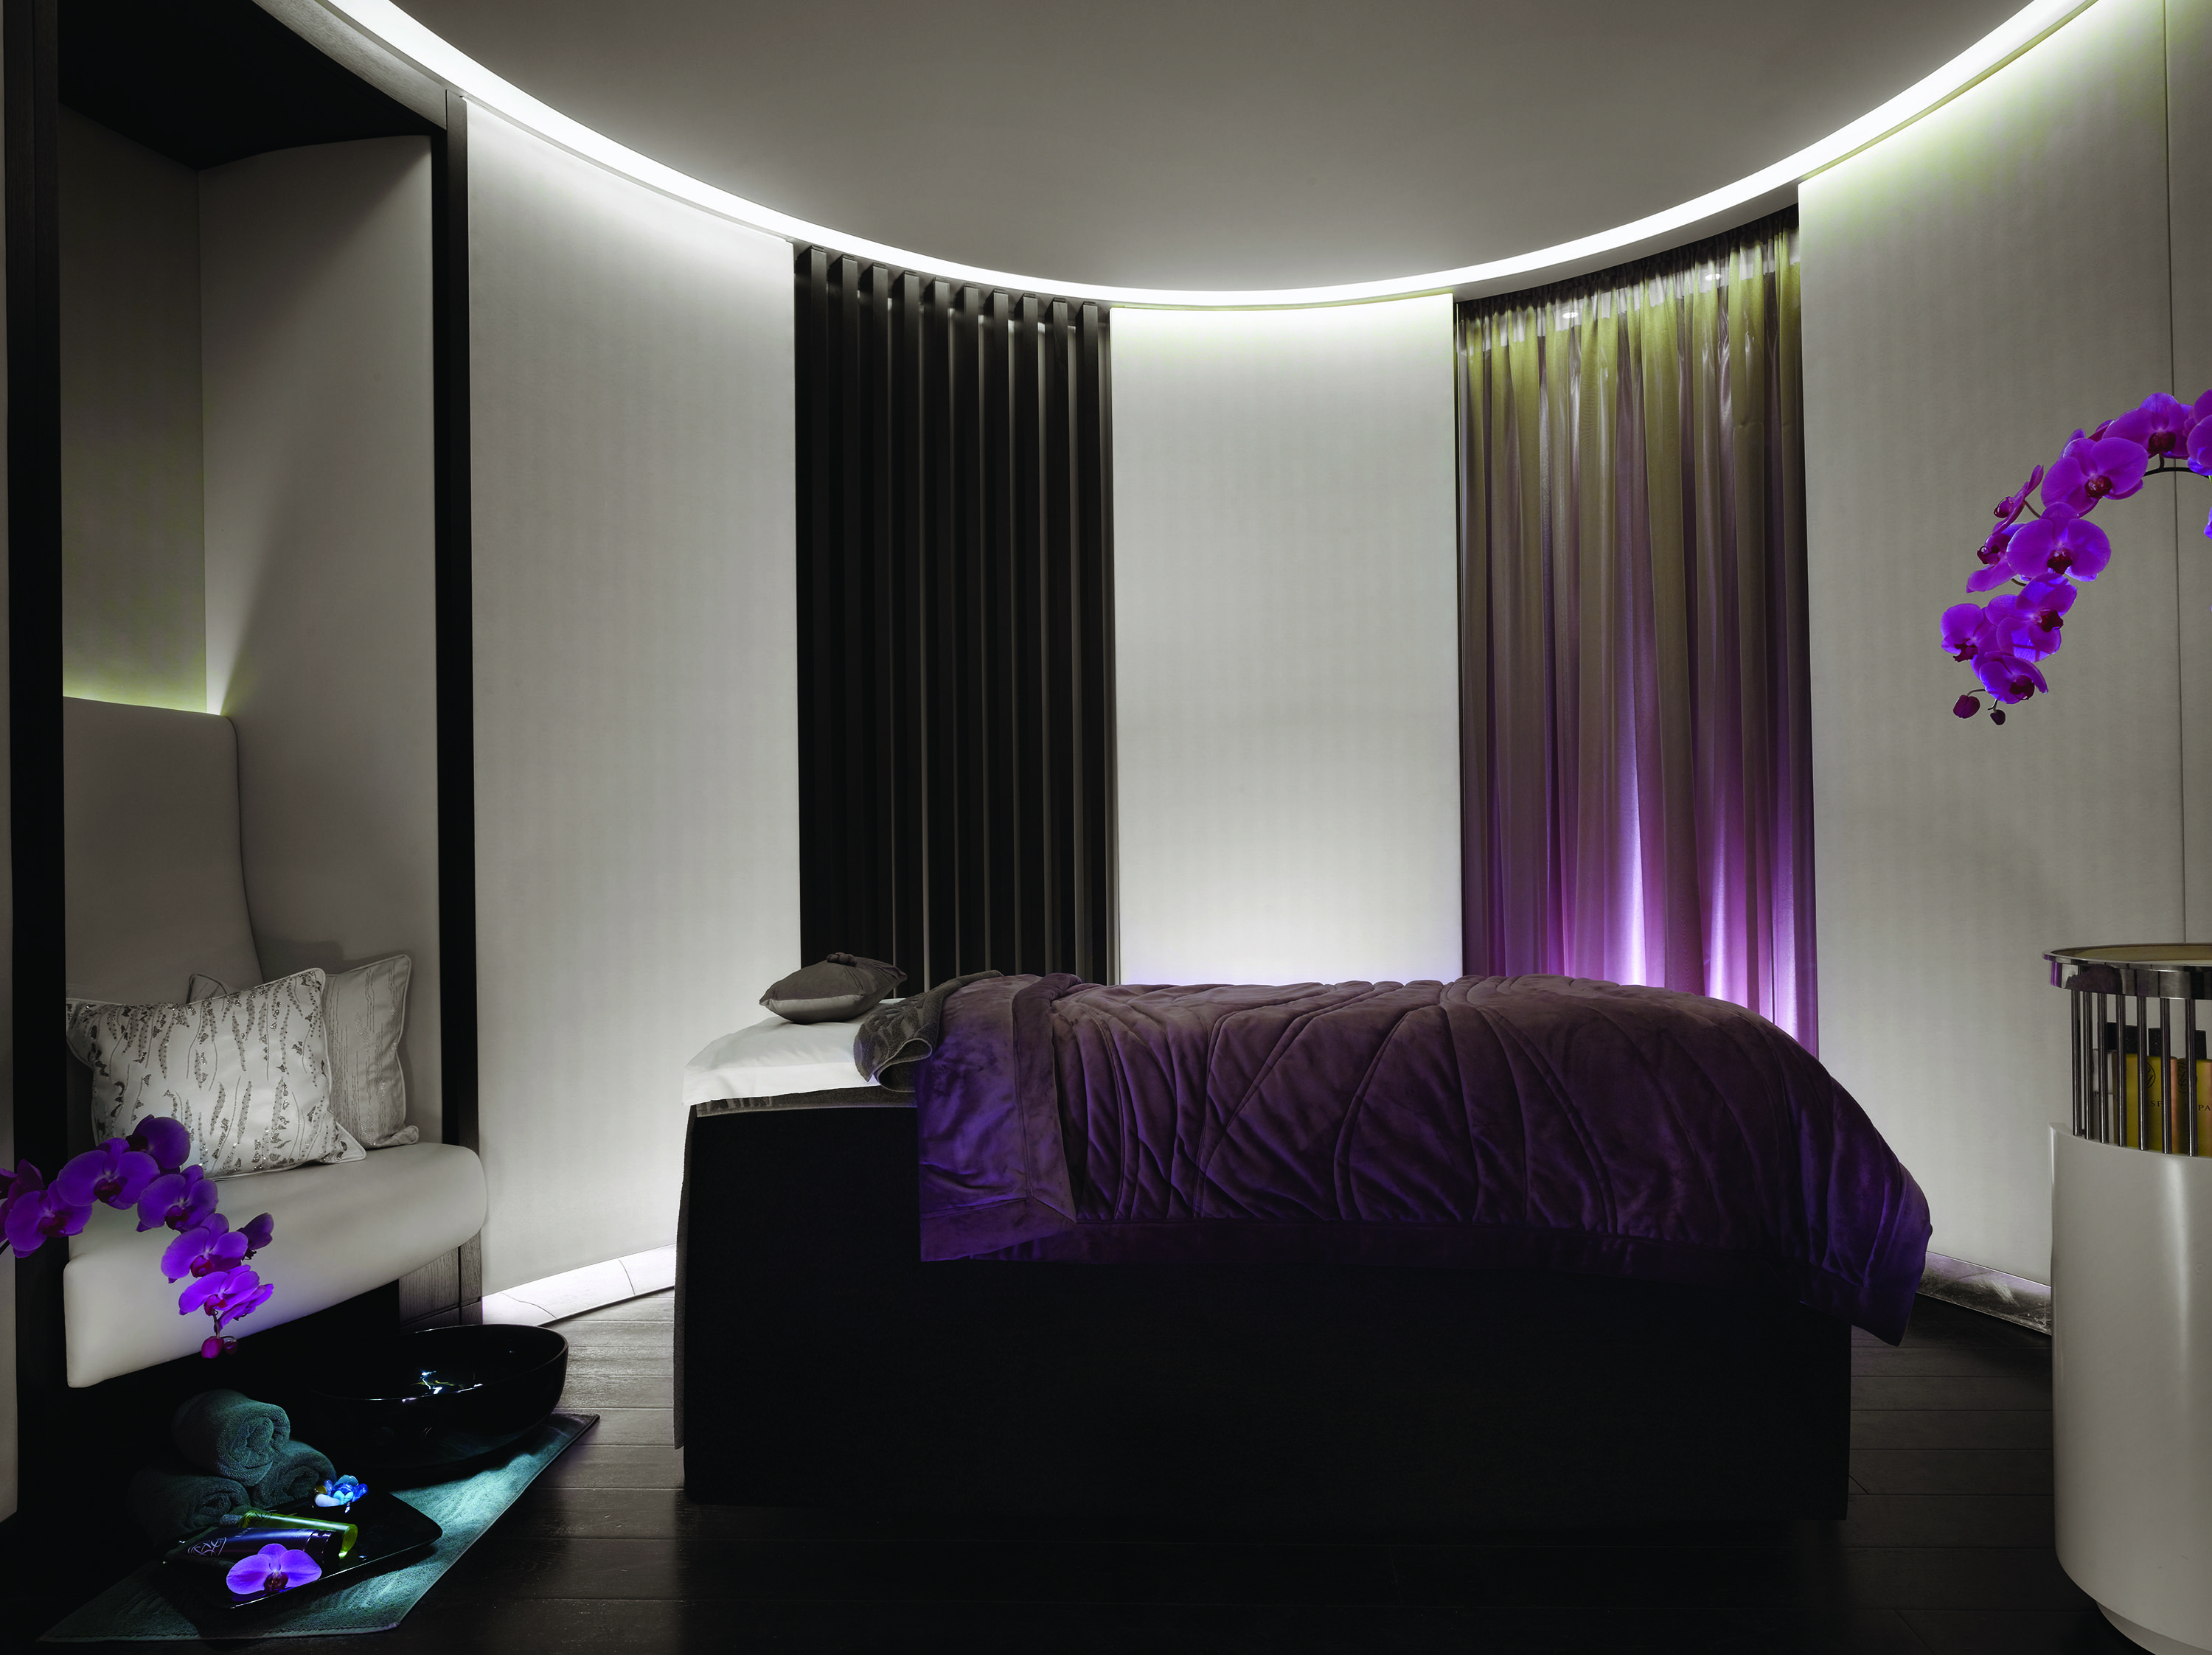 Relax Spa Bedroom - Spa